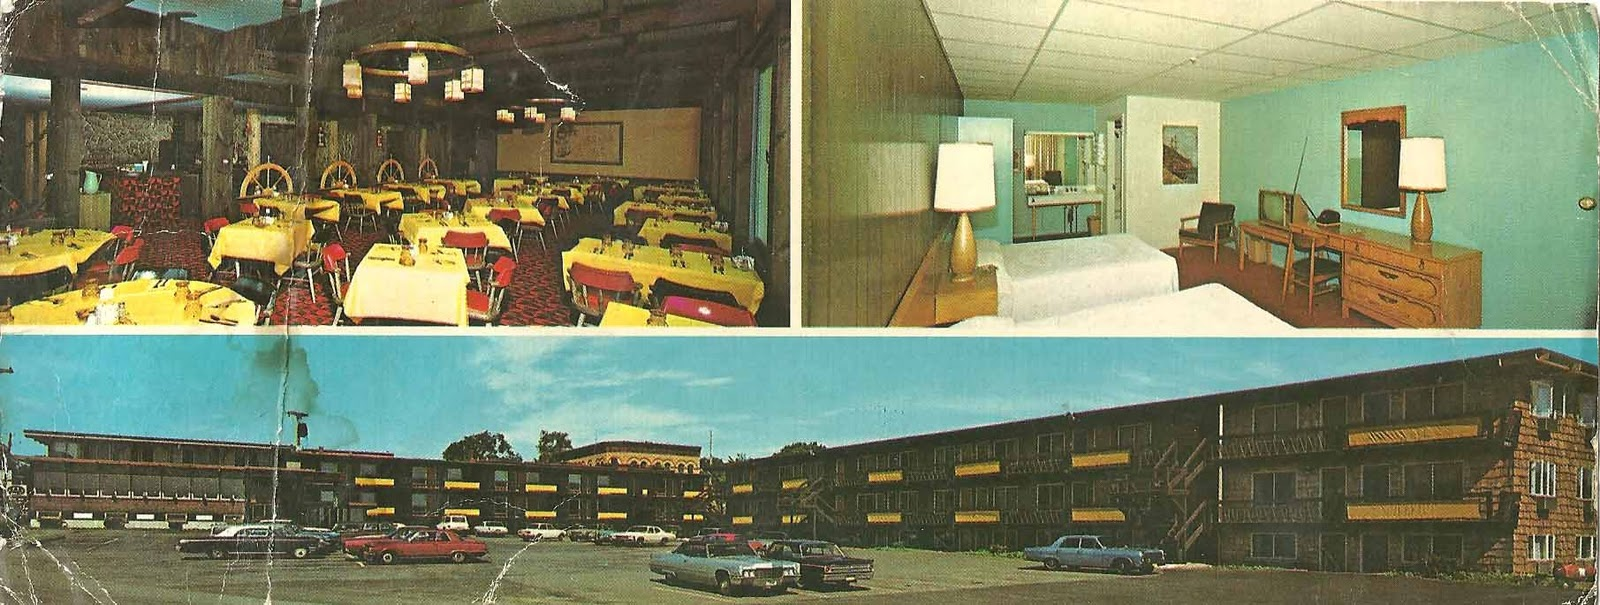 Postcard diary rockland for Trade winds motor inn rockland me